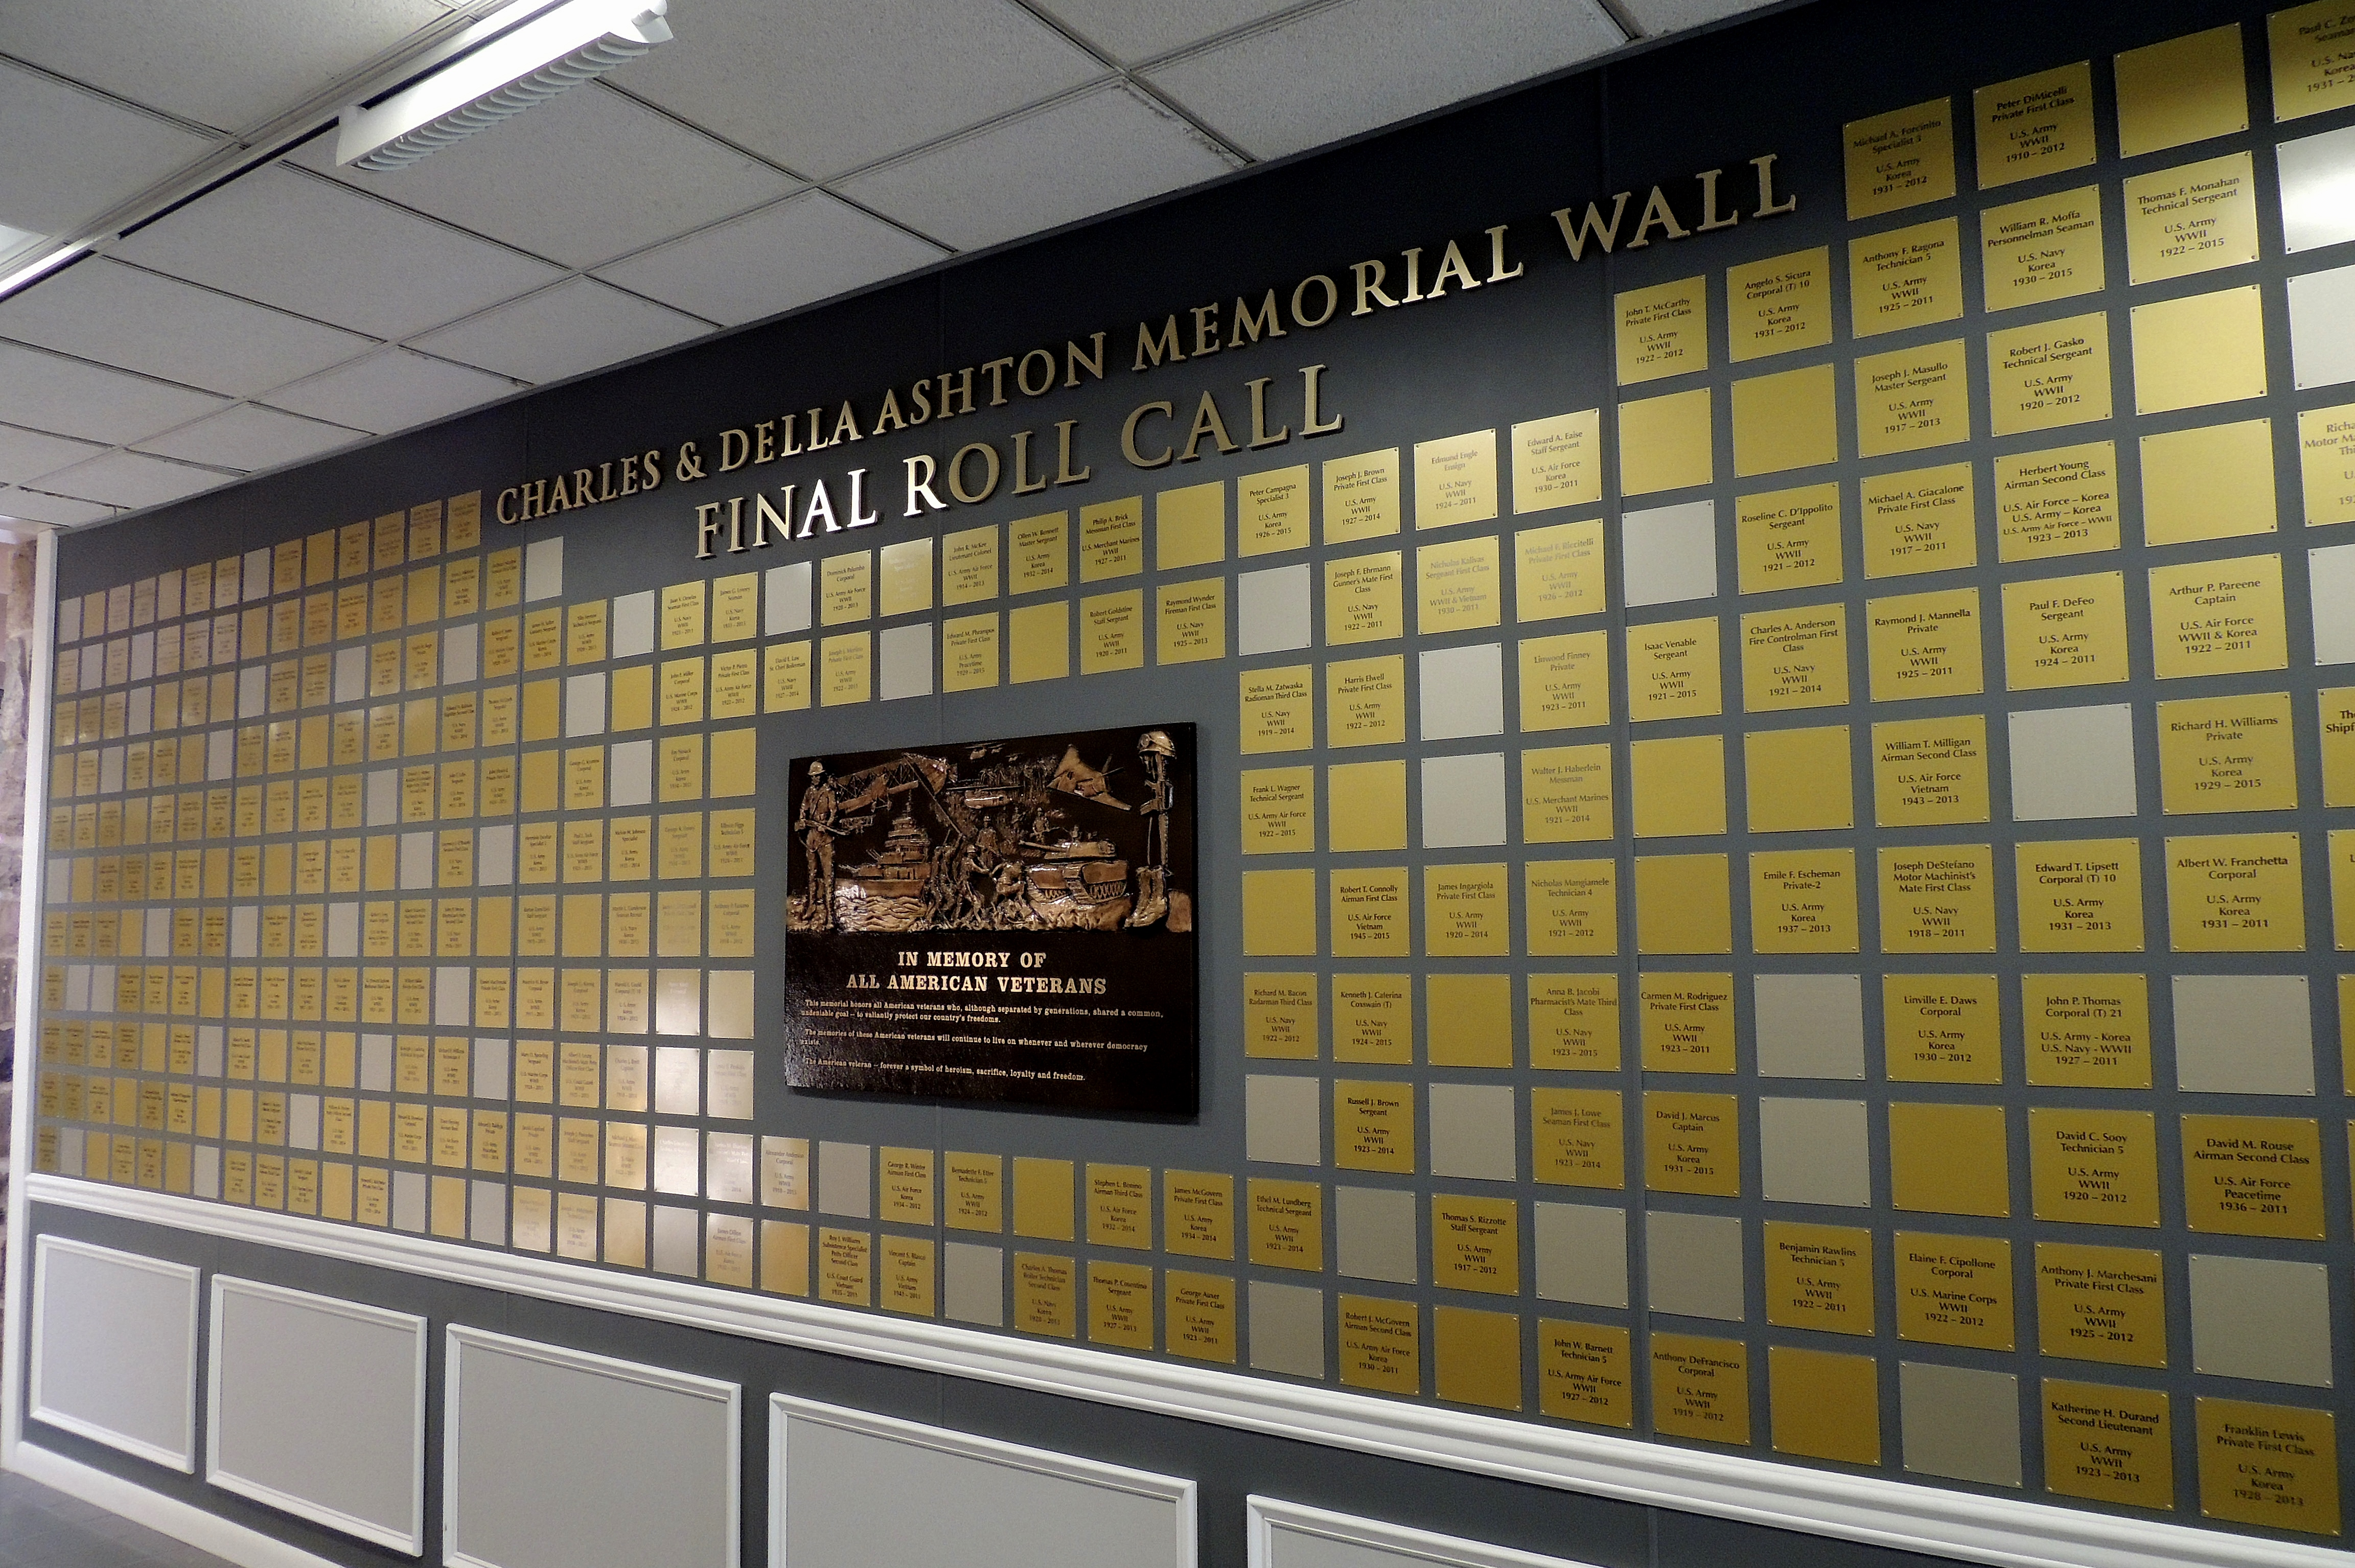 Donor Walls - dw155